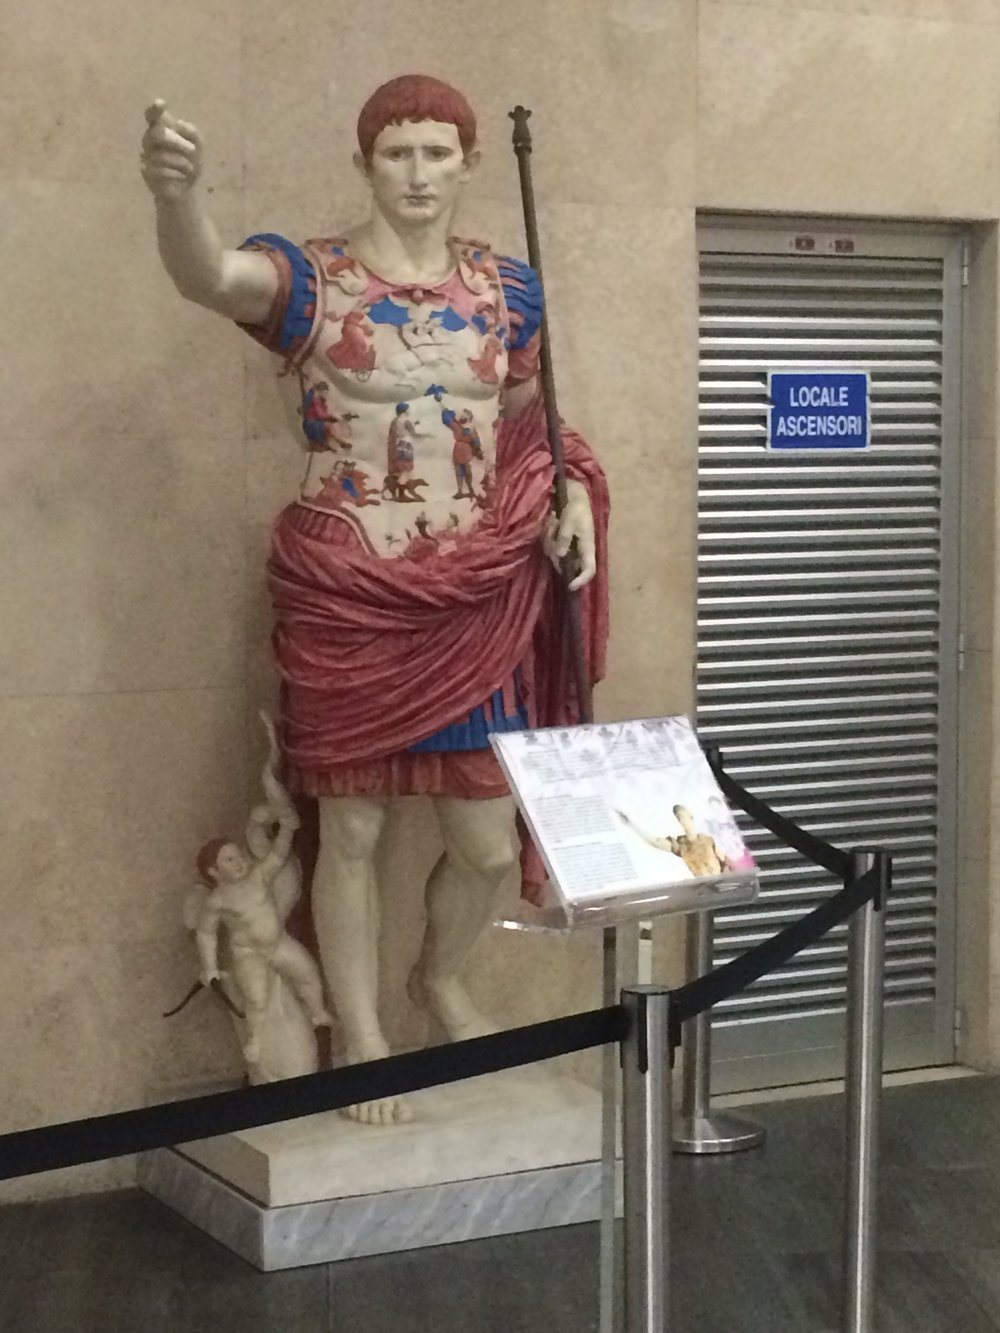 Then Caesar Augustus (I think) shows points you toward the metal detectors.